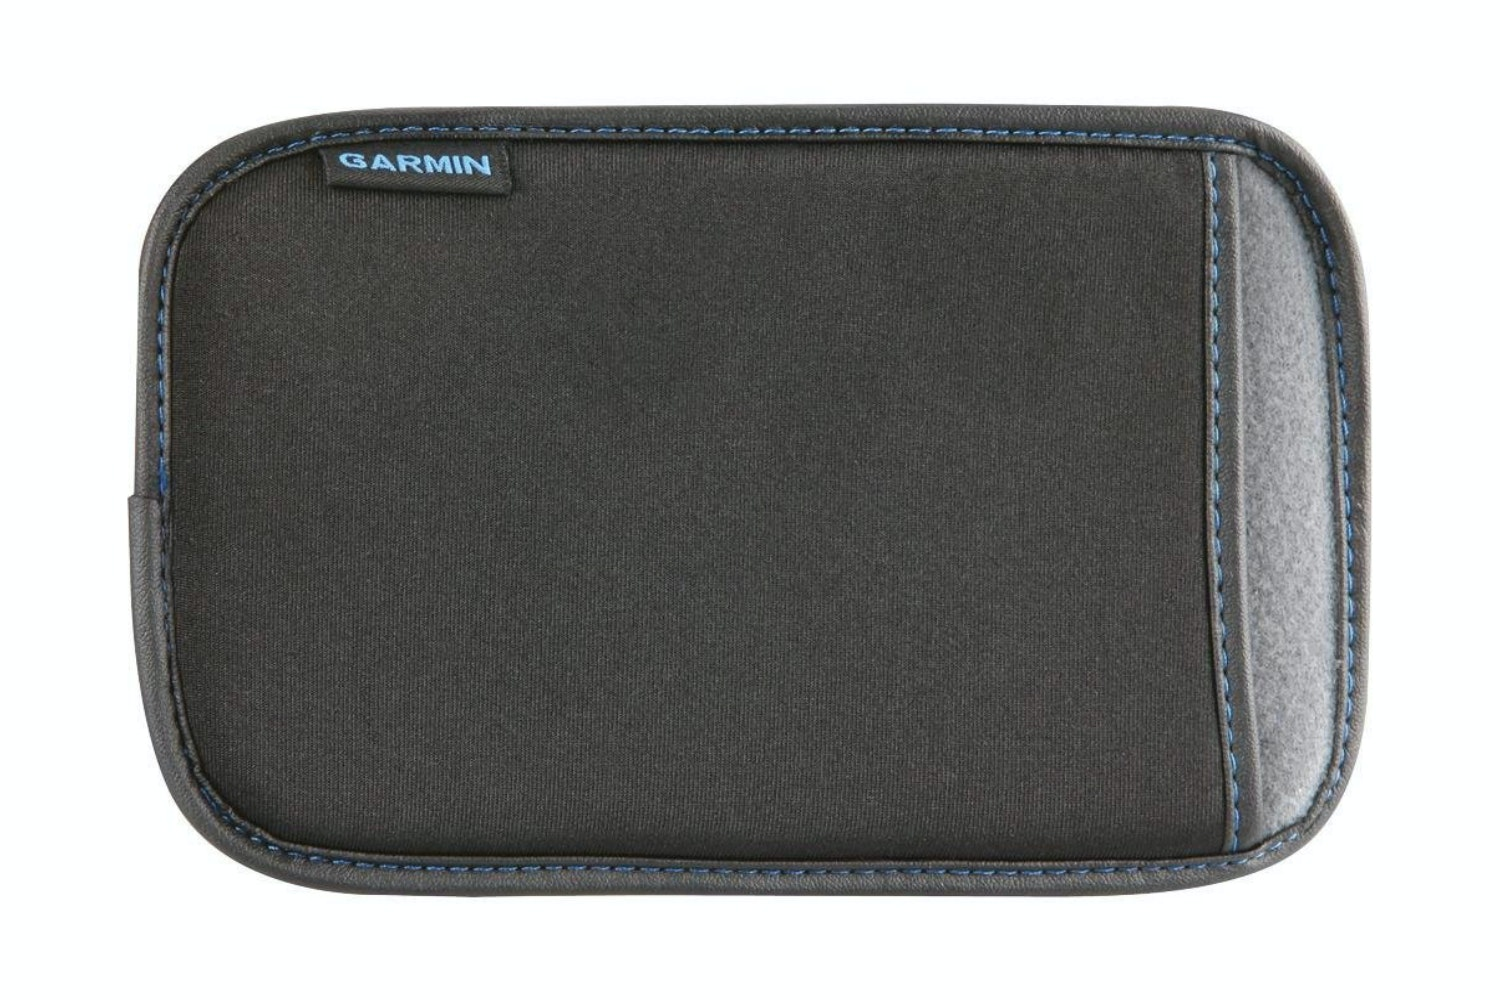 "Garmin 4.3"" Soft Carry Case"